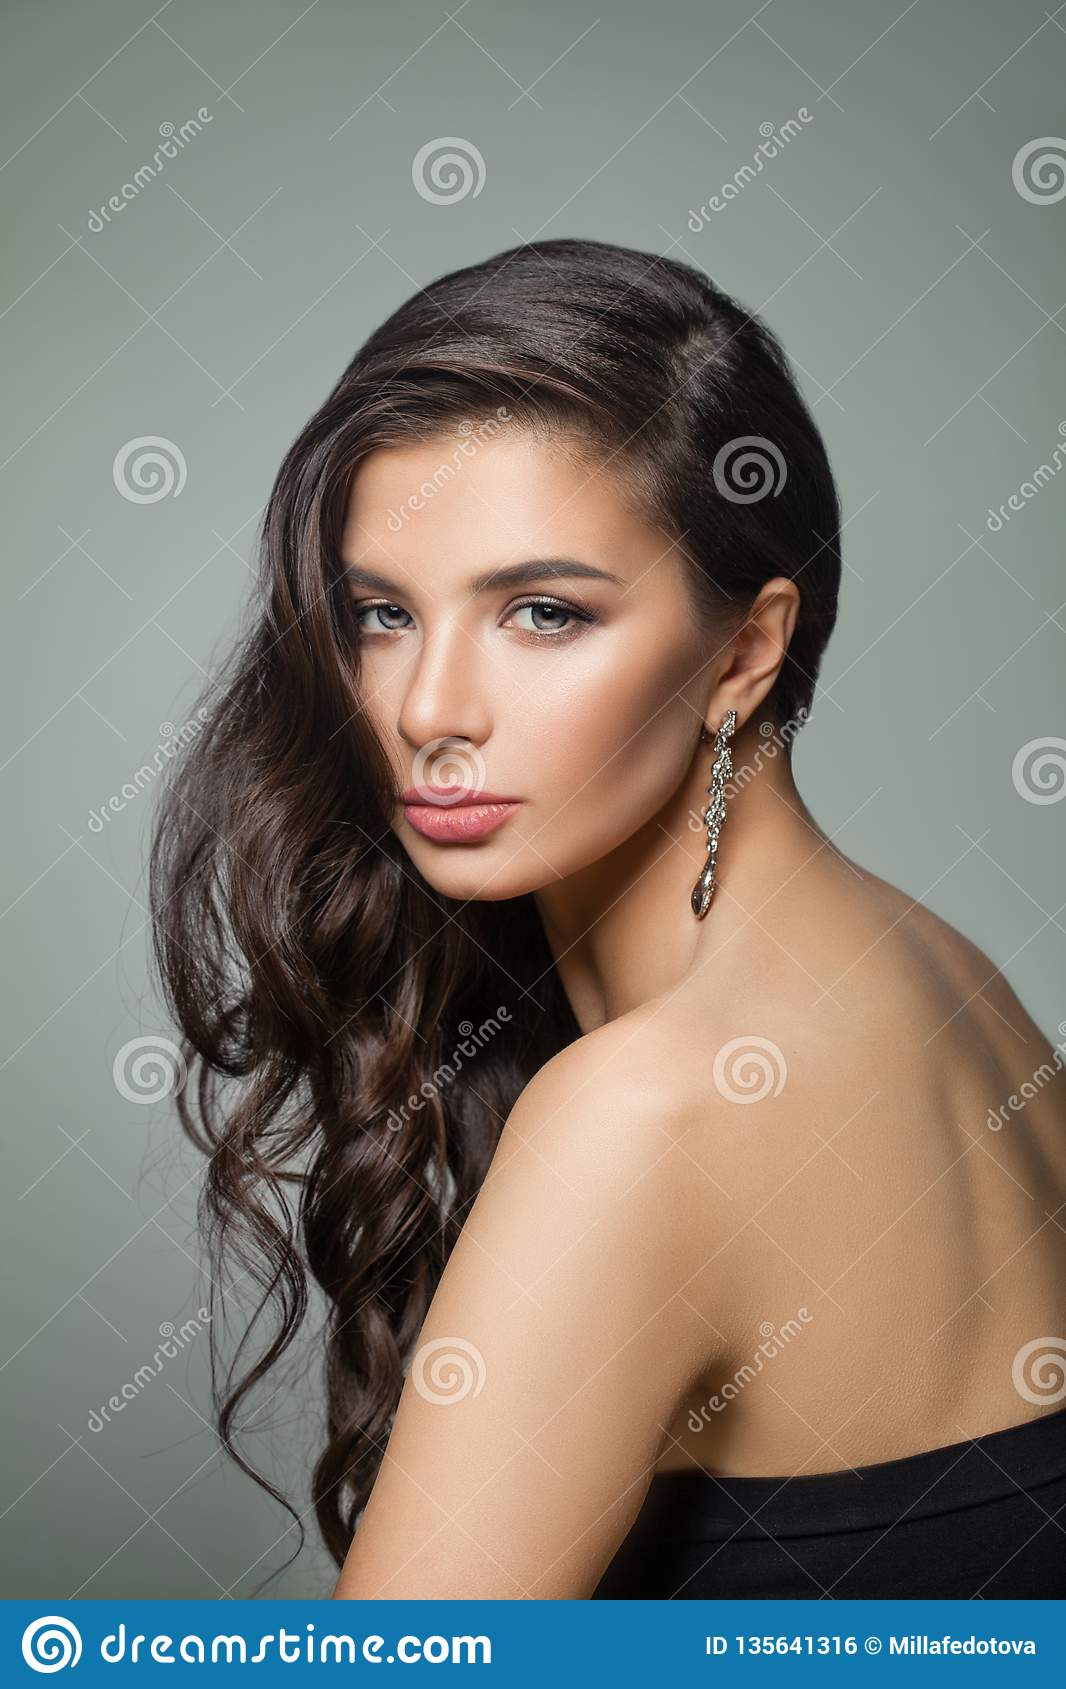 Beautiful dark brown hair woman. Fashion model with long perfect hairstyle, makeup and jewelry earrings